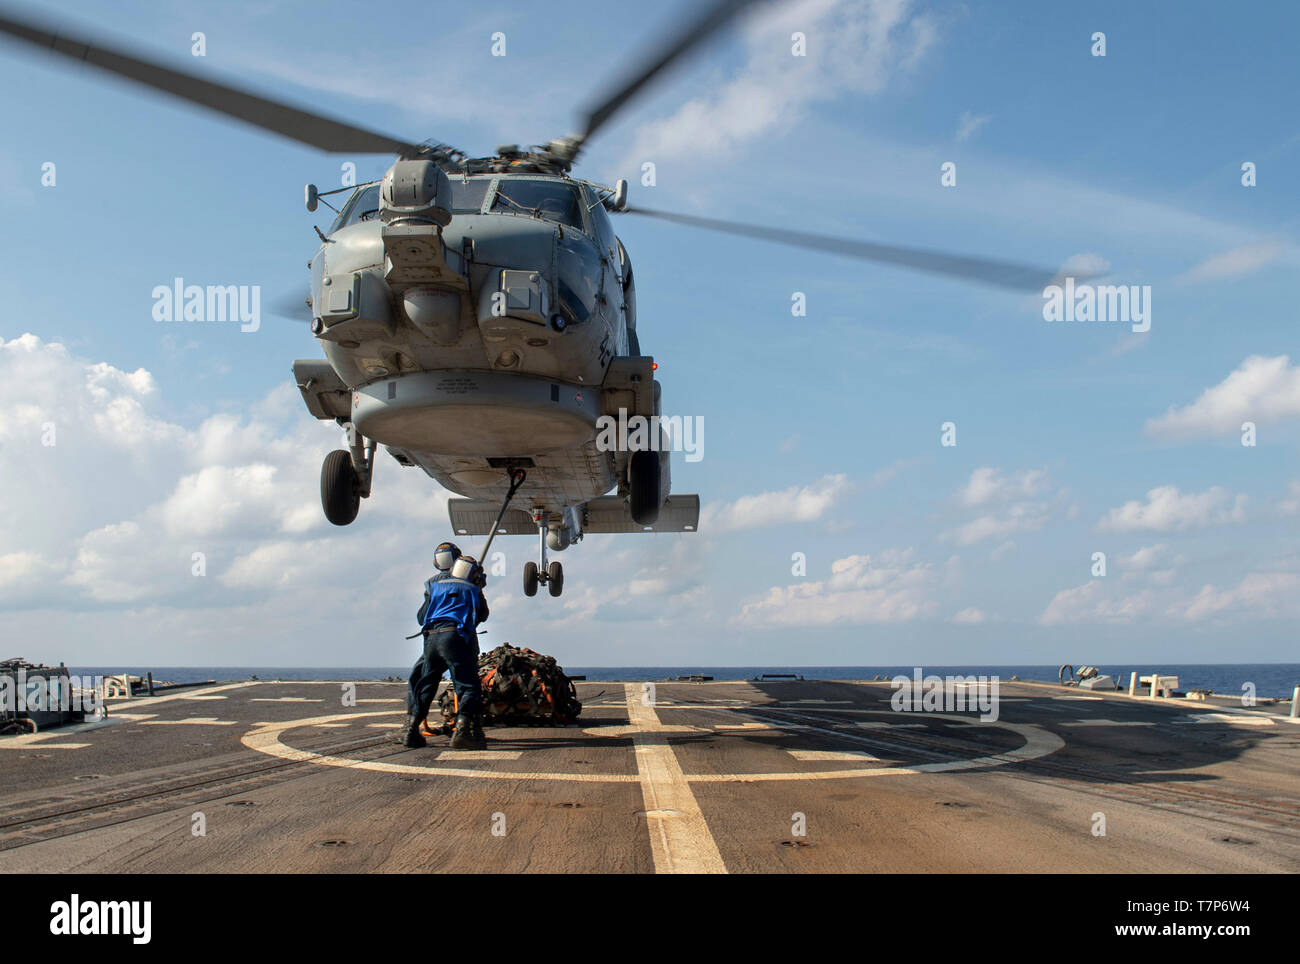 """190507-N-UI104-0380 SOUTH CHINA SEA (May 7, 2019) Sailors hook up palets to a MH-60R Seahawk assigned to the """"Easyriders"""" of Helicopter Maritime Strike Squadron (HSM) 37, Detachment ONE, aboard the Arleigh Burke-class guided-missile destroyer USS Preble (DDG 88) during a replenishment-at-sea.  Preble is deployed to the U.S 7th Fleet area of operations in support of security and stability in the Indo-Pacific region. (U.S. Navy Photo by Mass Communication Specialist 1st Class Bryan Niegel/Released) - Stock Image"""